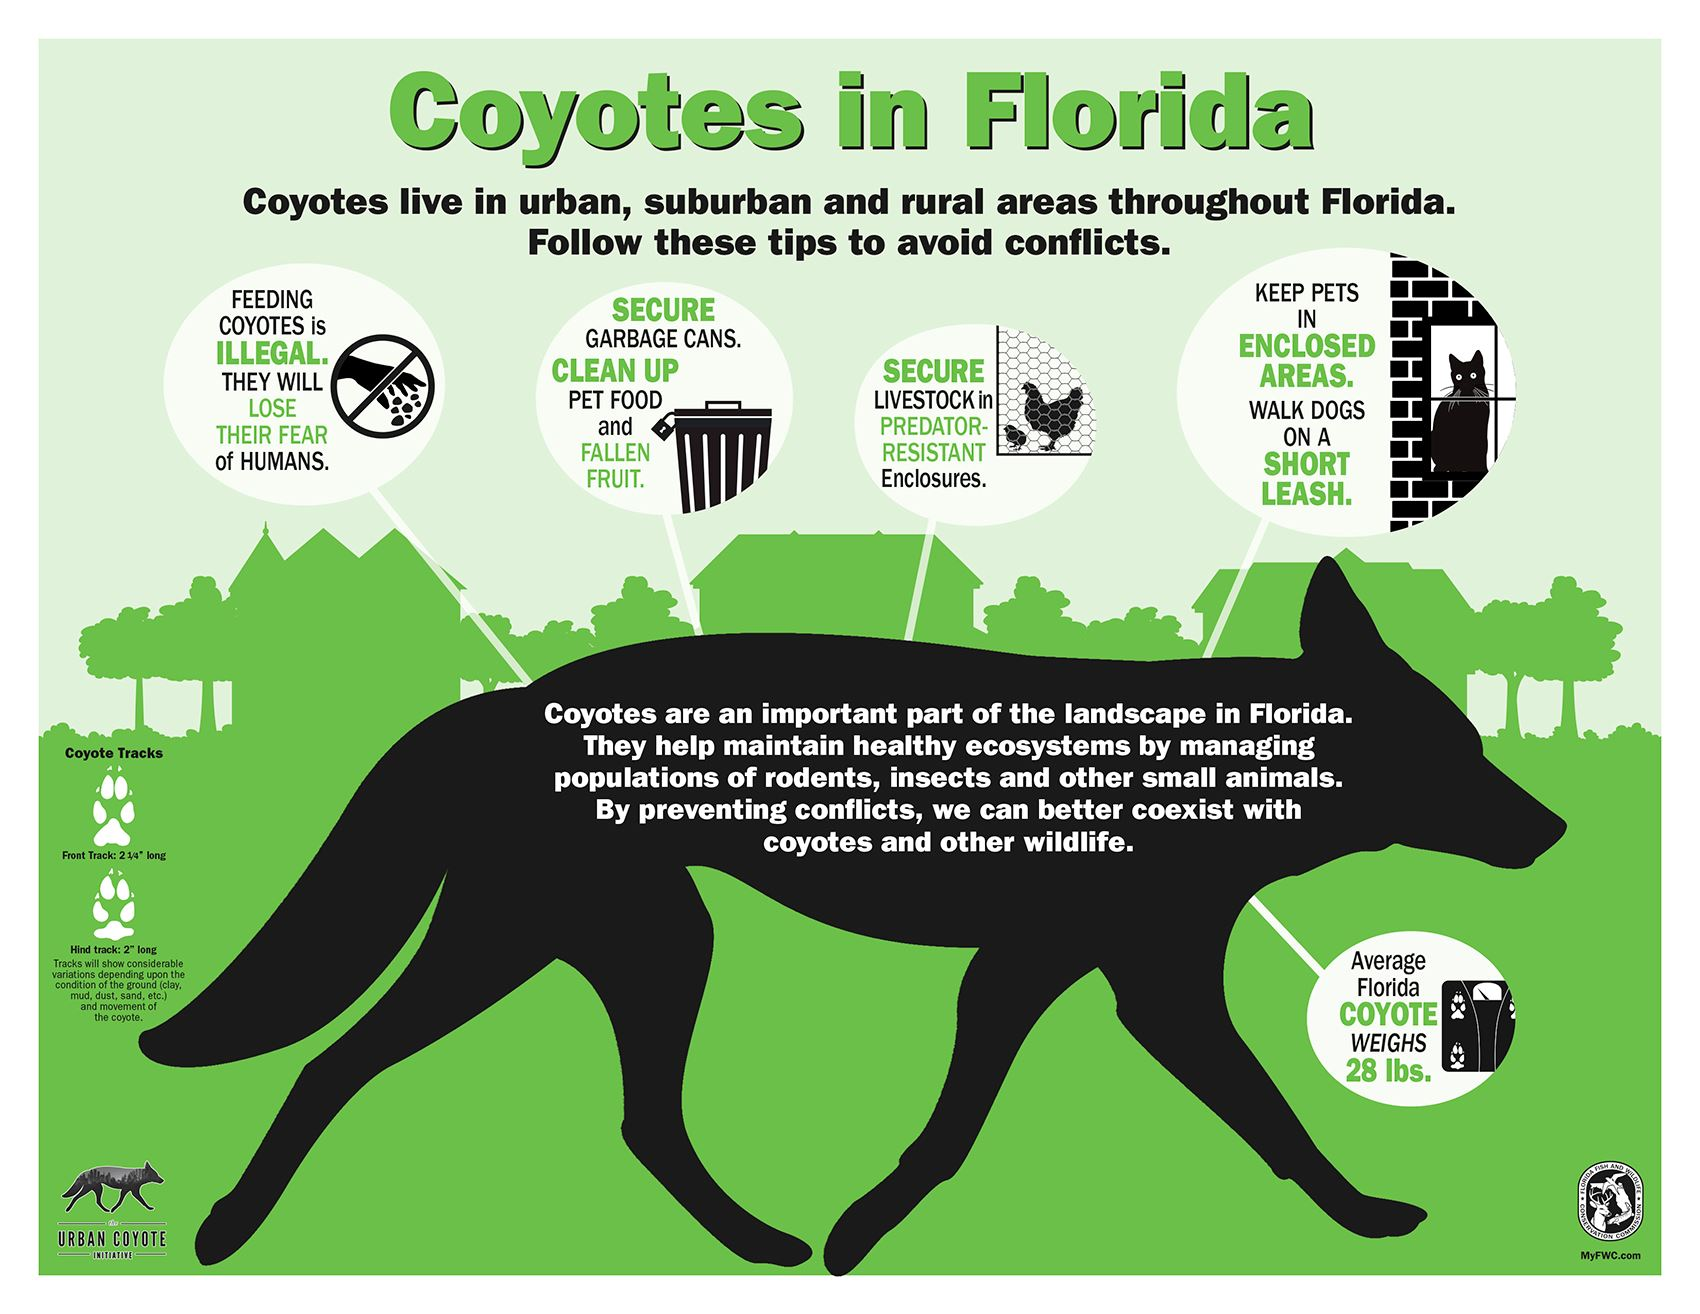 coyotes-in-florida-infographic